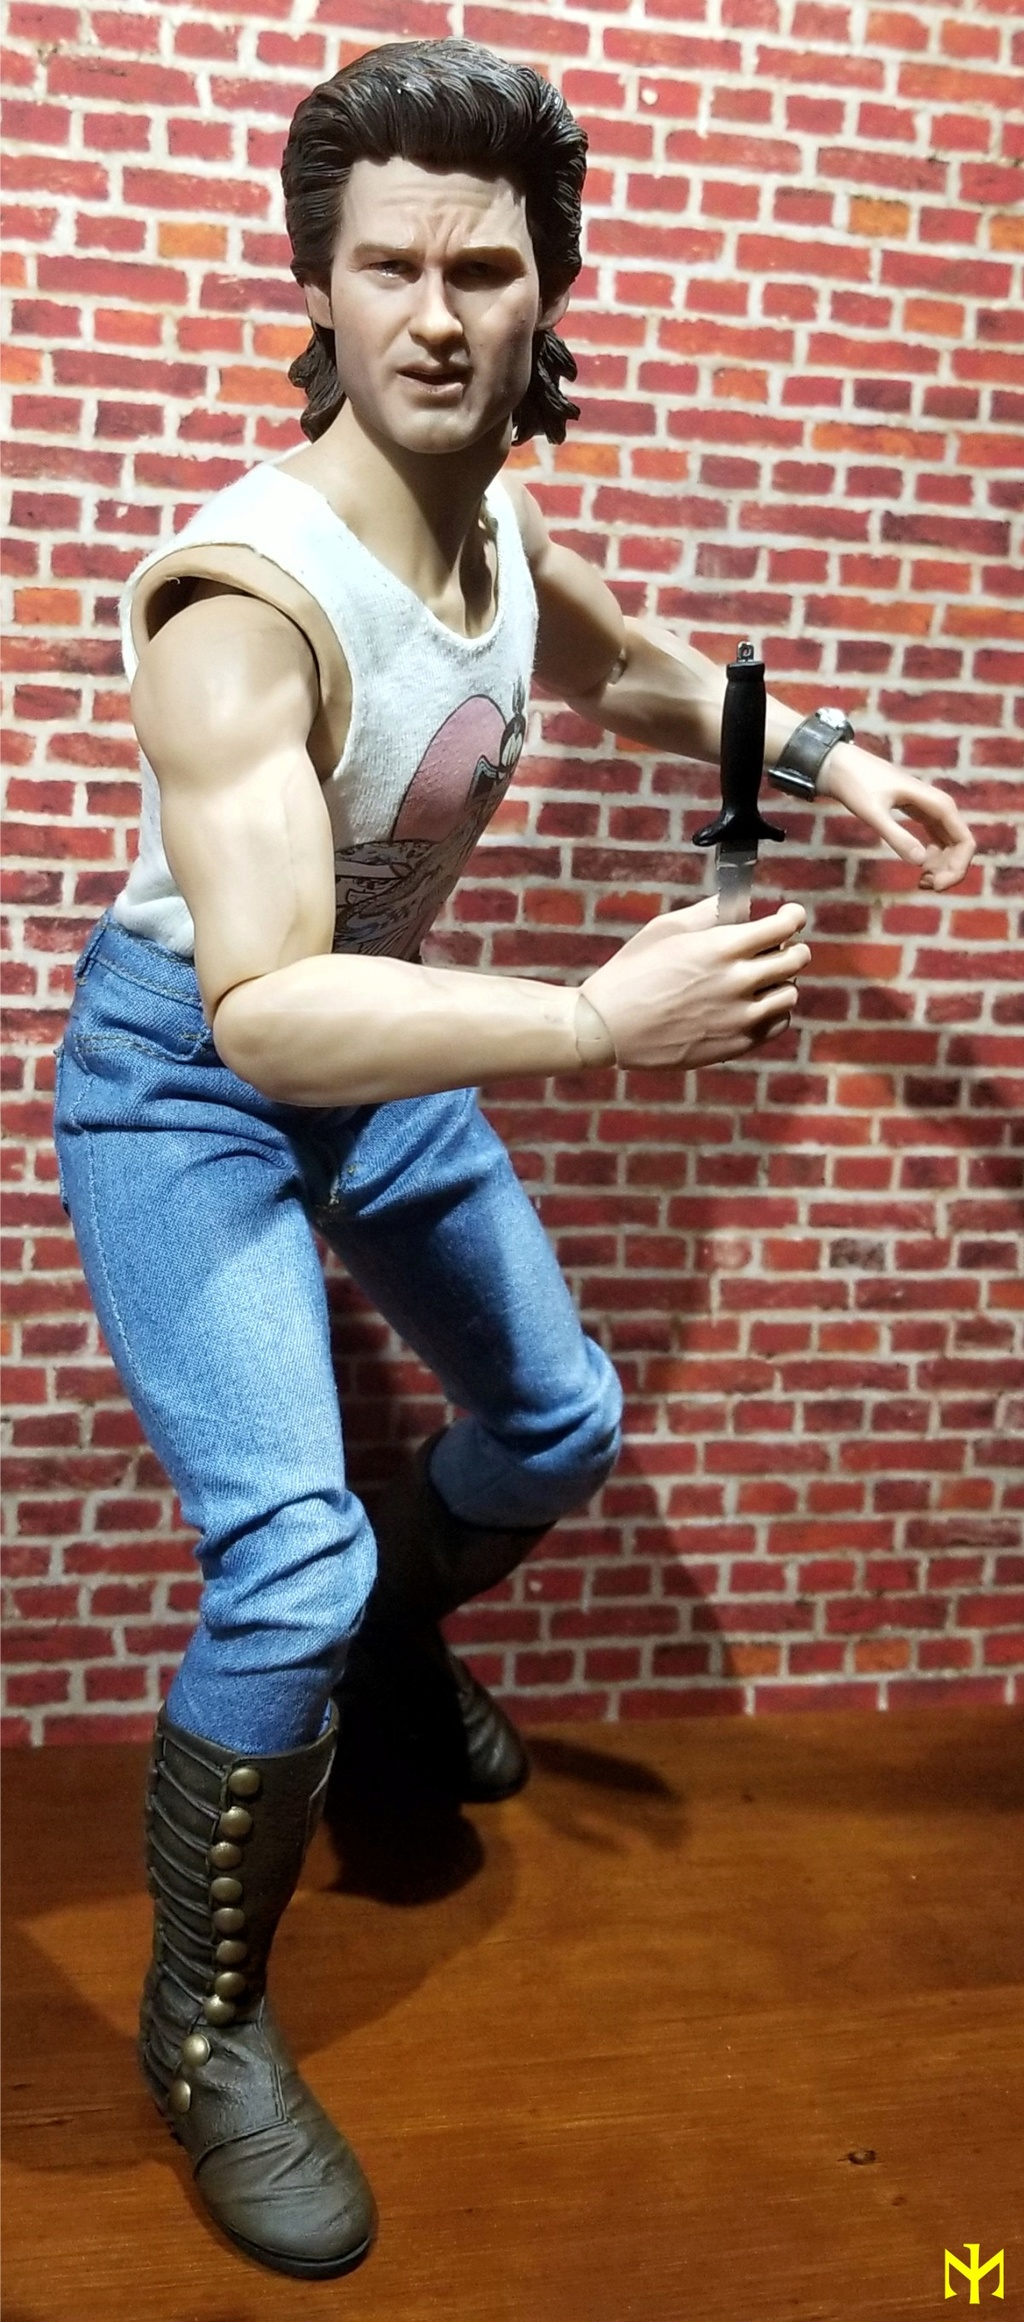 bigtroubleinlittlechina - Sideshow Jack Burton Detailed Review Sscjb015